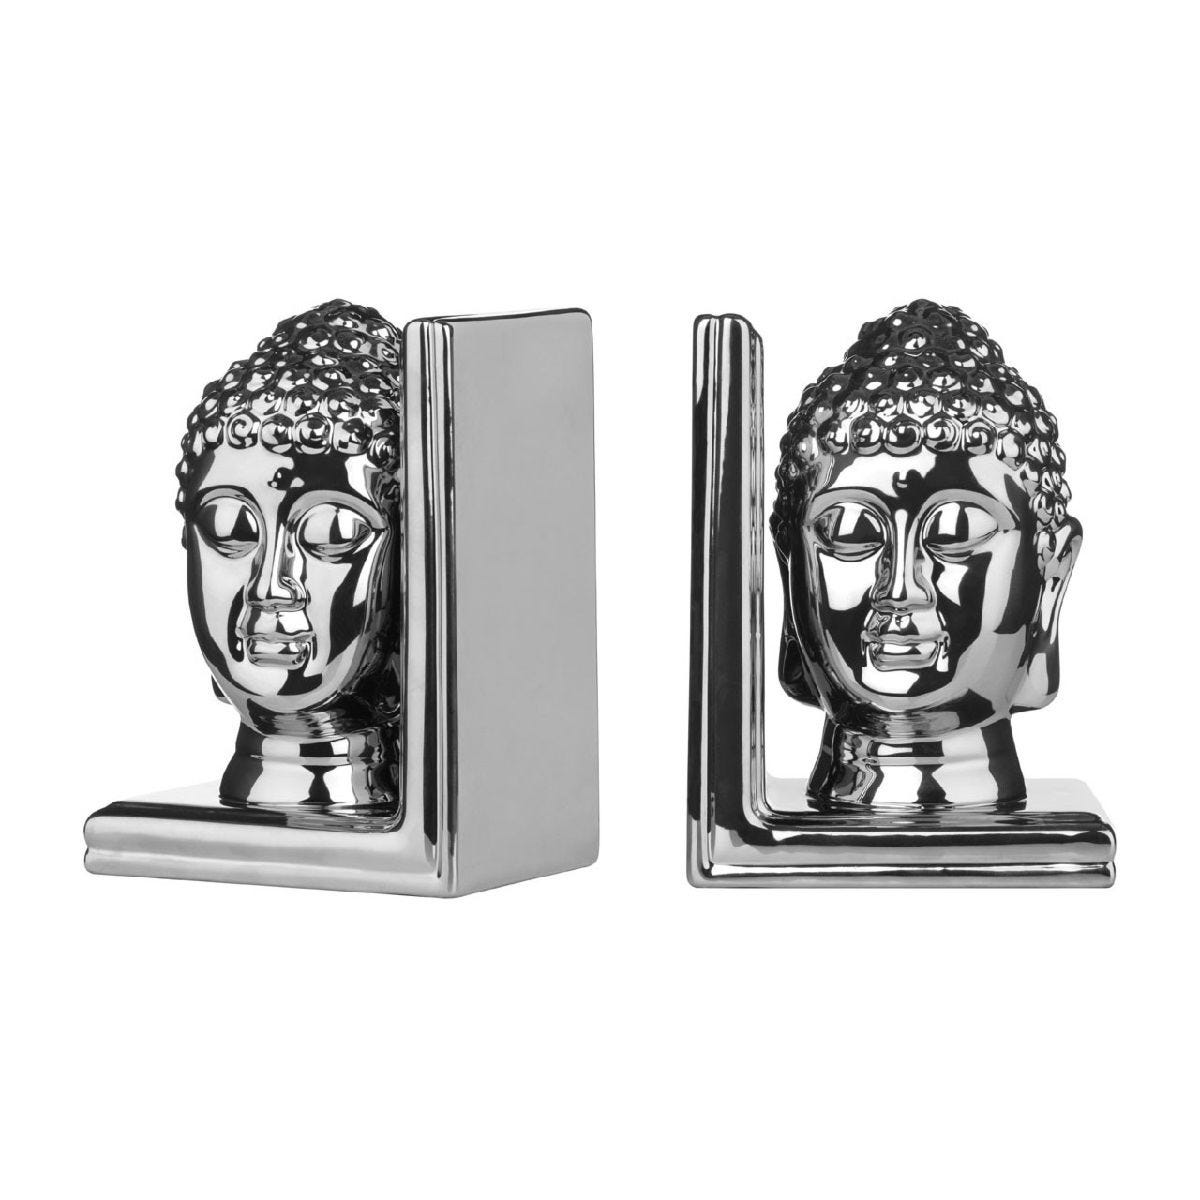 Premier Housewares Buddha Head Set of 2 Bookends - Silver Dolomite